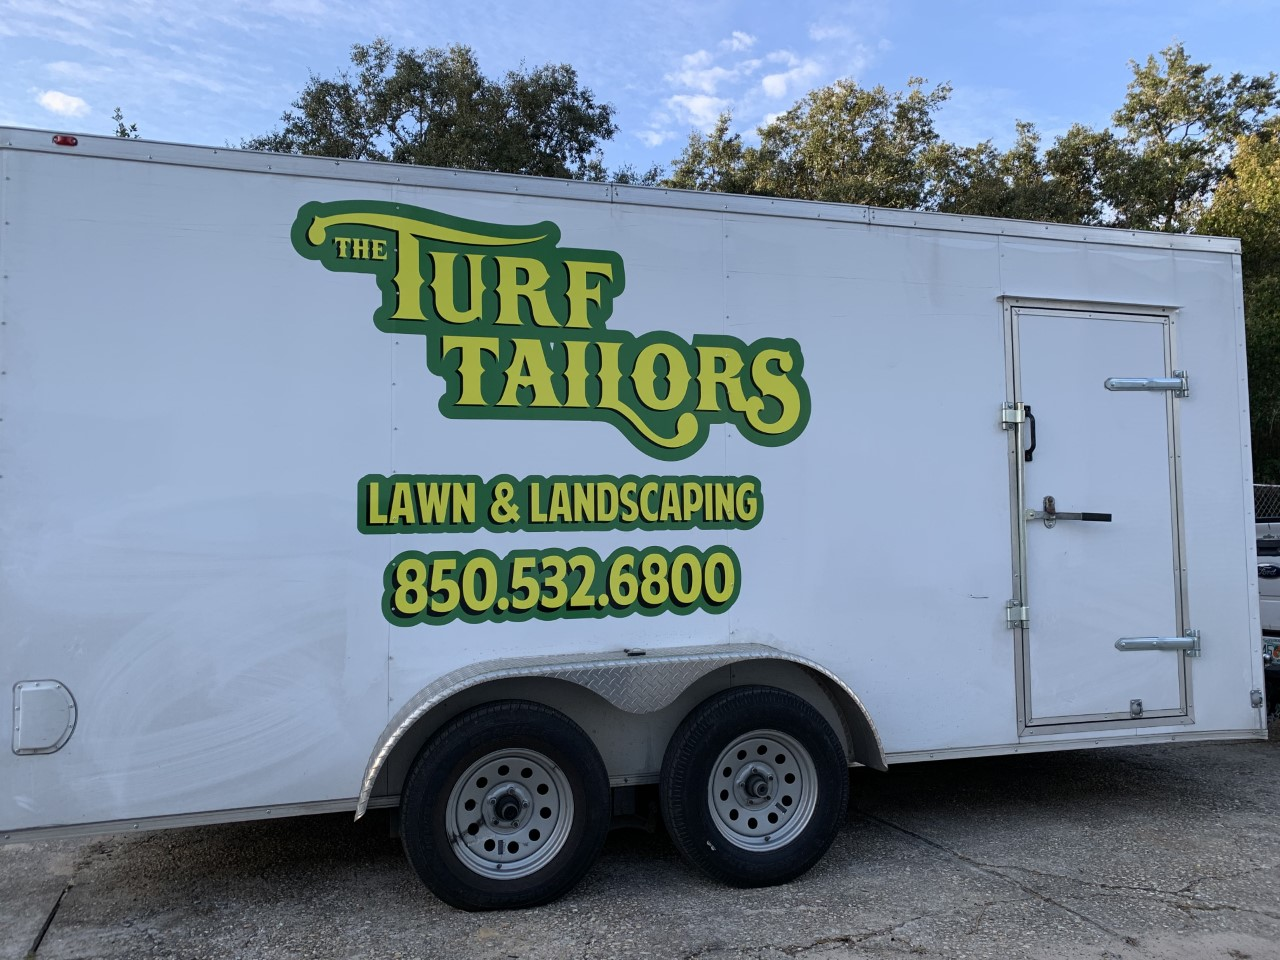 The Turf Tailor trailer